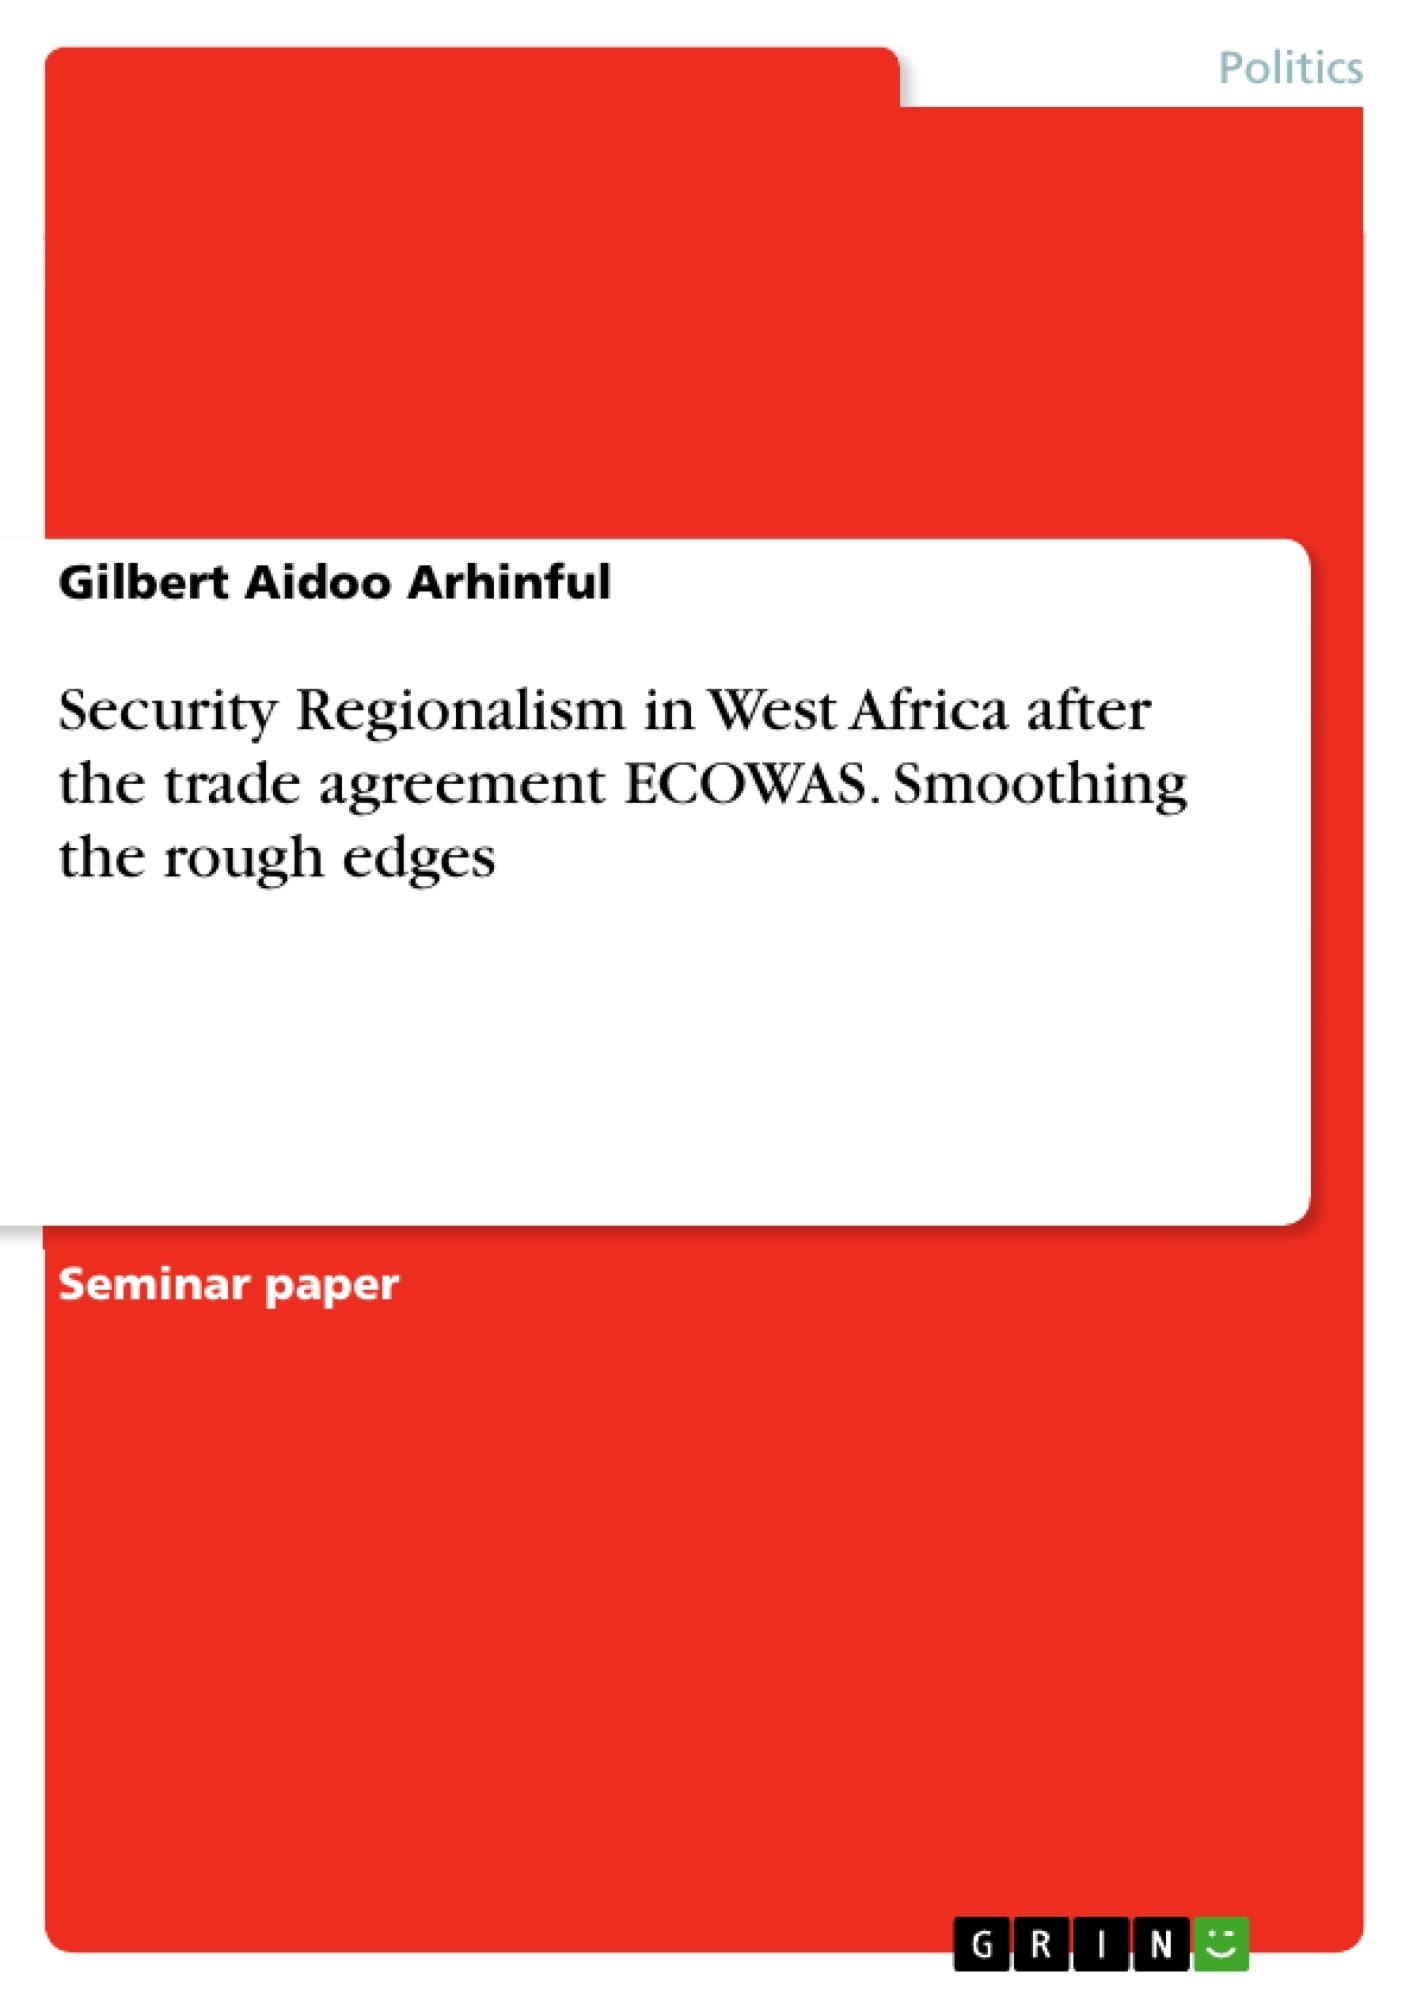 Title: Security Regionalism in West Africa after the trade agreement ECOWAS. Smoothing the rough edges